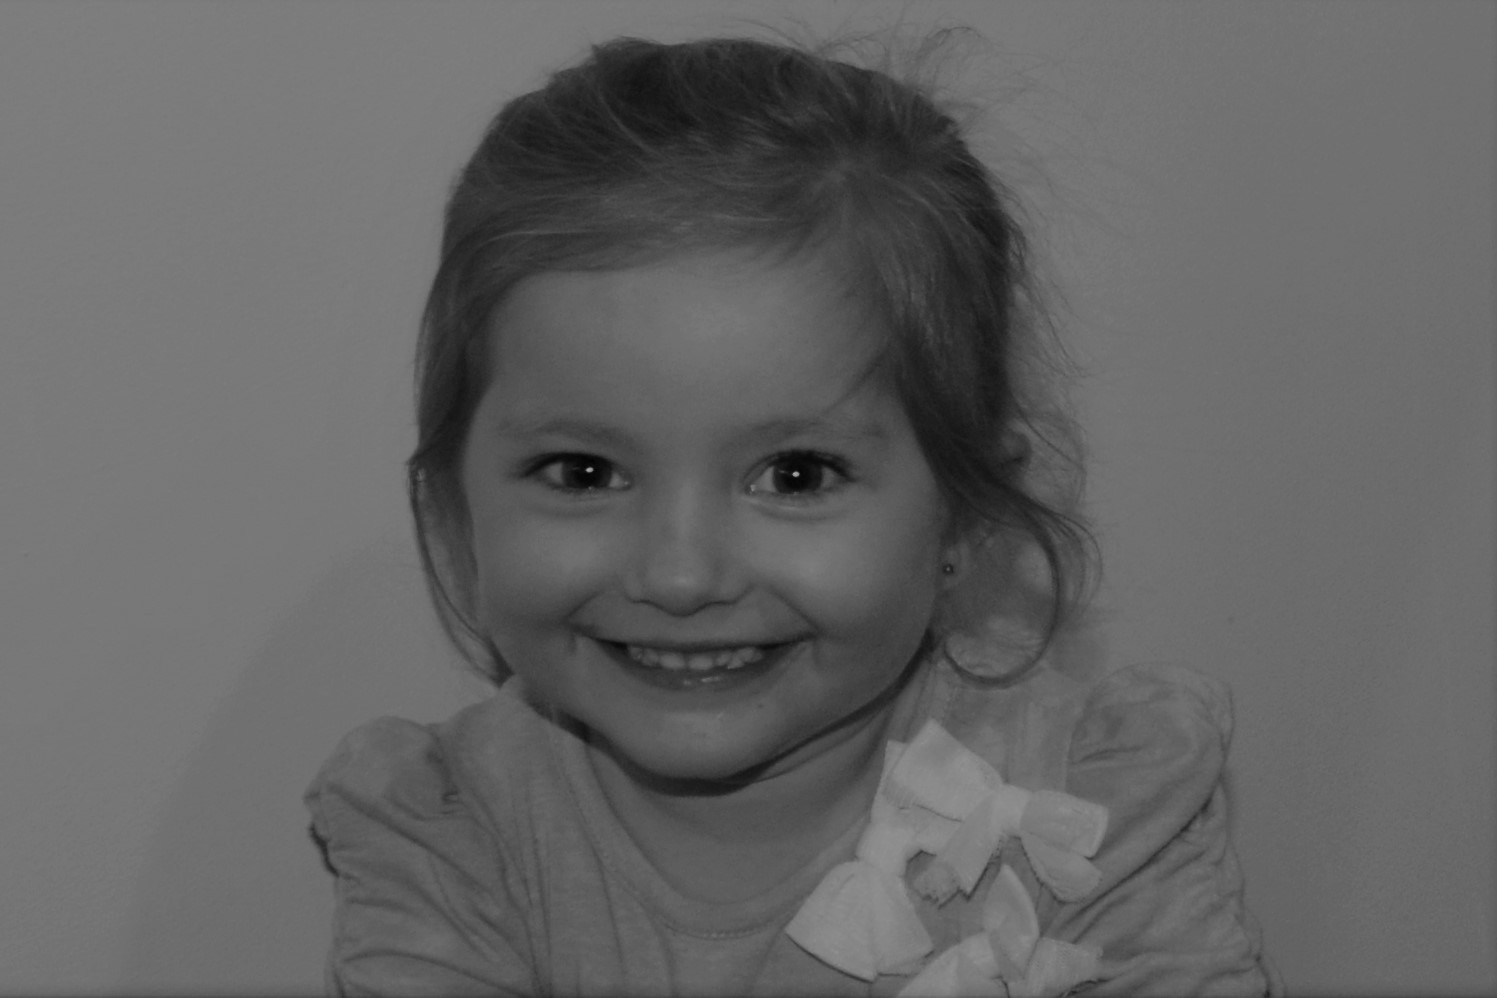 GISELLE - 4 YEARS OLD AND THIRD LITTLE WOMANINTELLIGENT, FUNNY, ATHLETIC, MODEL, LOVES SINGING AND DANCING, PLAY DOUGH, PAINTING, PLAYING DRESS UPS, STRONG WILLED AND EXPLORING THE GREAT OUTDOORS